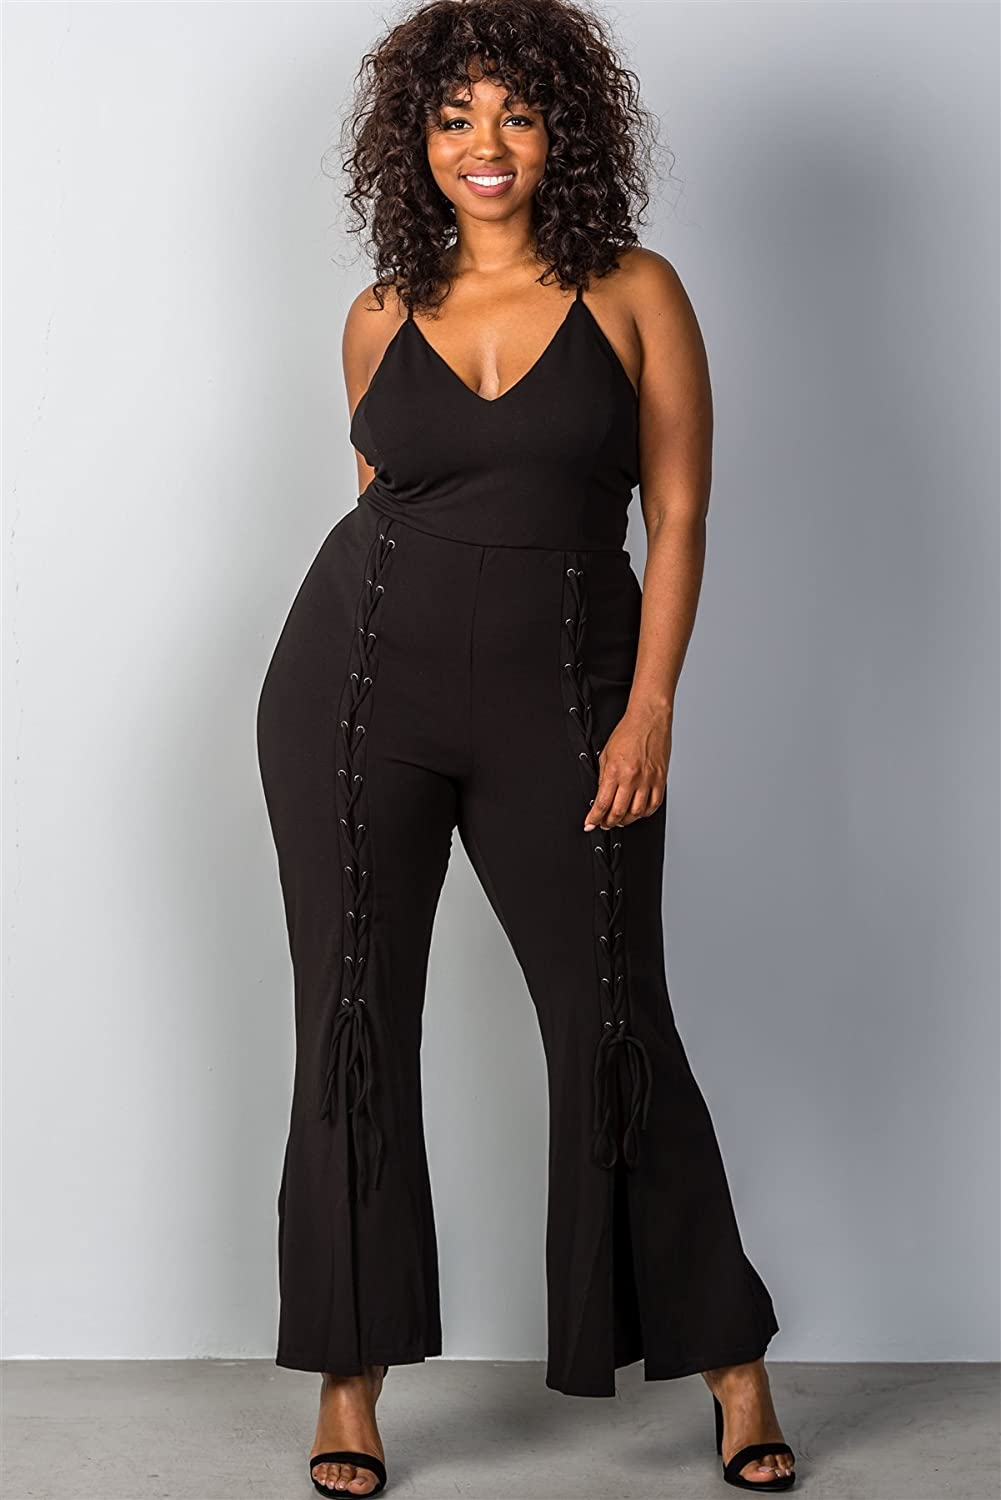 e69889adc Top2: Ladies Fashion Plus Size Lace up Split Leg Plus Size Jumpsuit